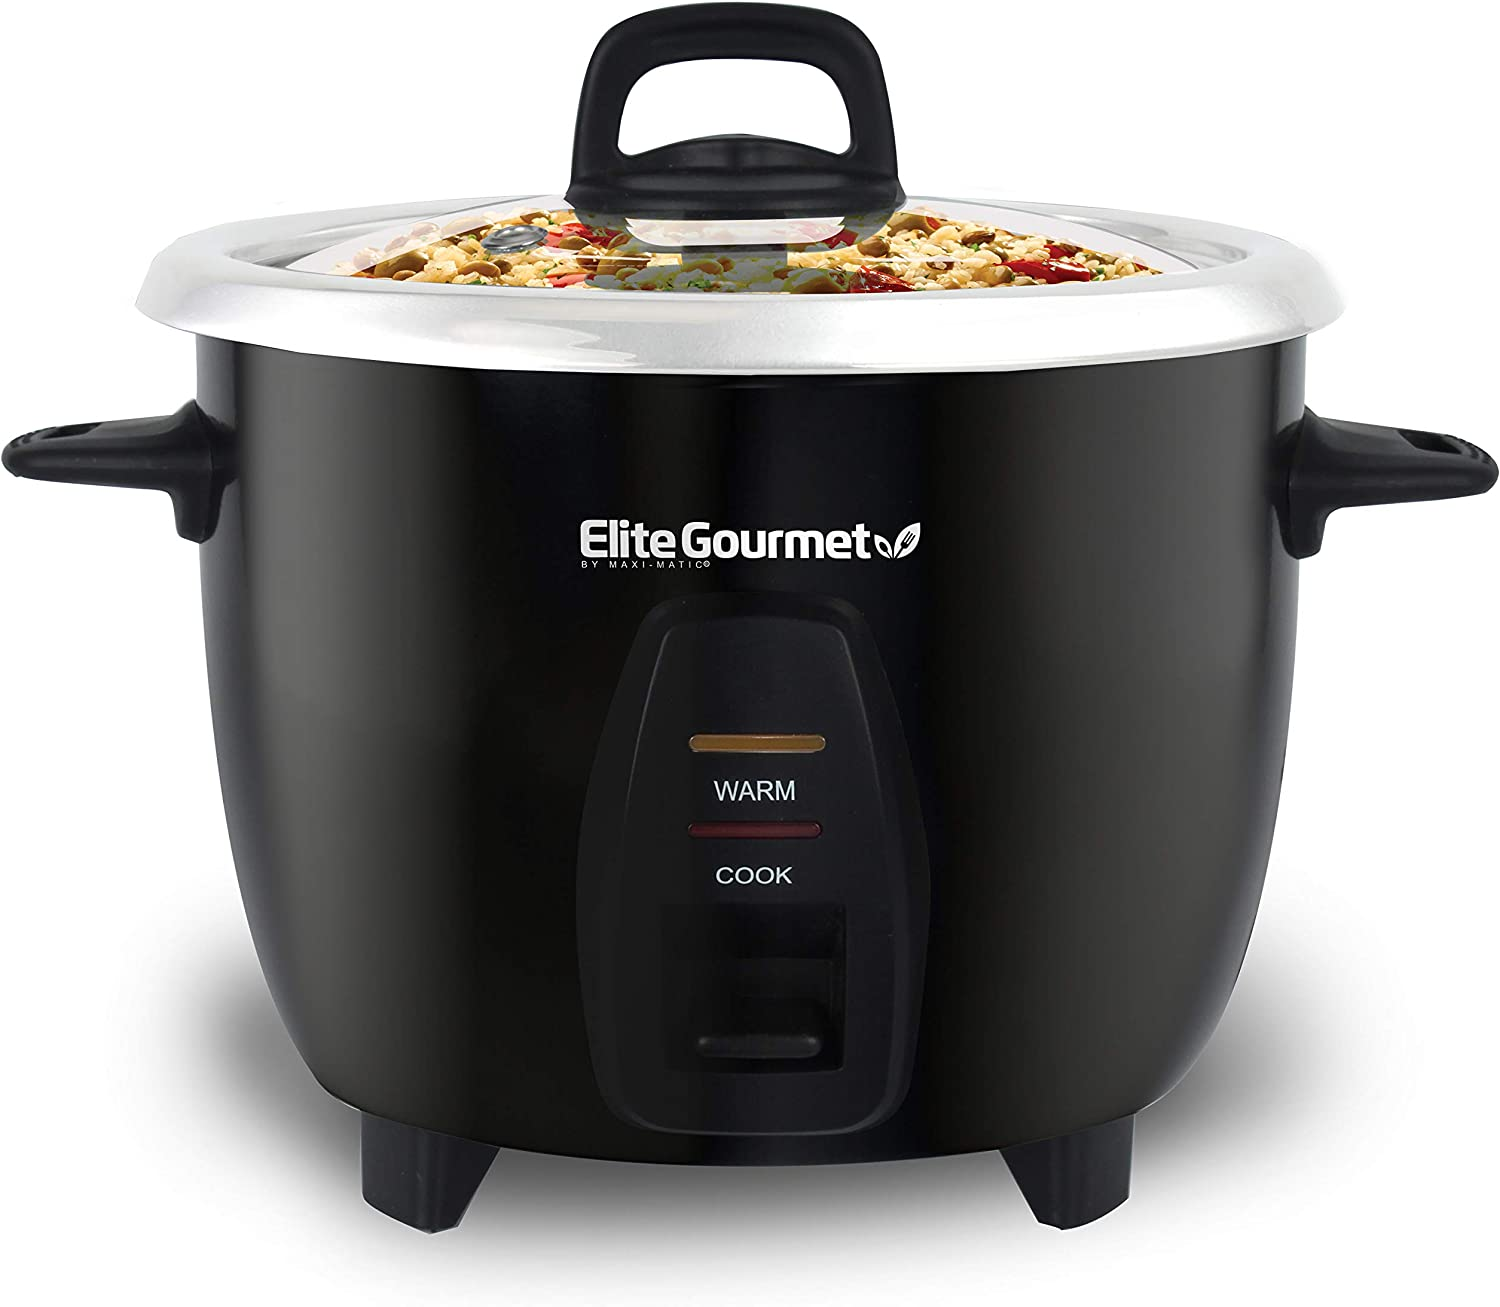 Elite Gourmet Maxi-Matic Electric Rice Cooker with Stainless Steel Inner Pot Makes Soups, Stews, Porridge's, Grains and Cereals, 10 cups cooked (5 Cups uncooked), Black